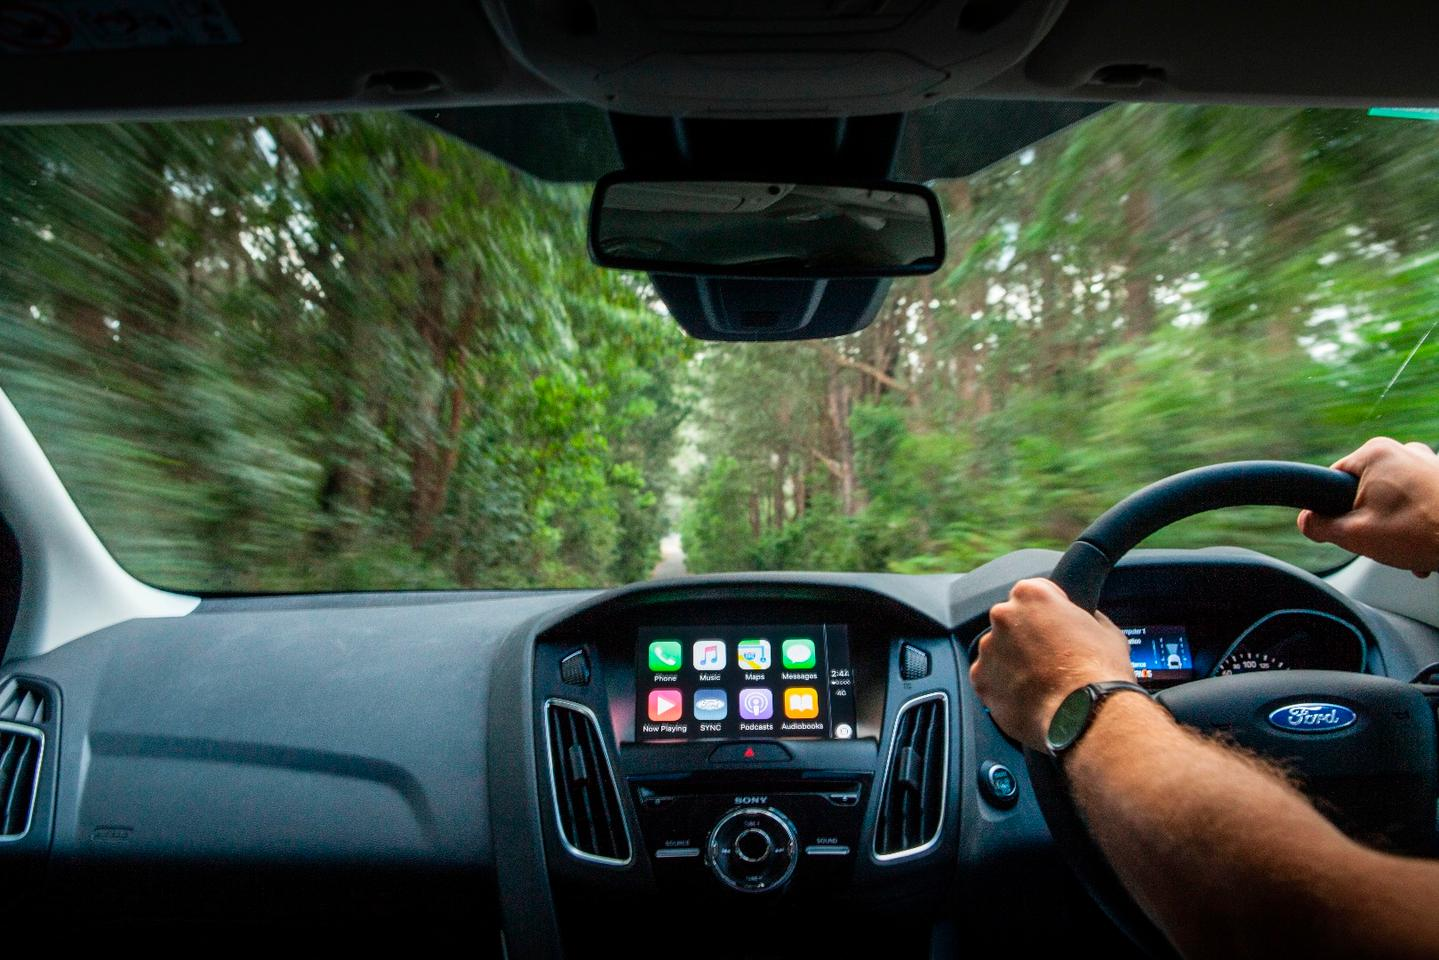 The 2016 FocusfeaturesApple CarPlay and Android Auto